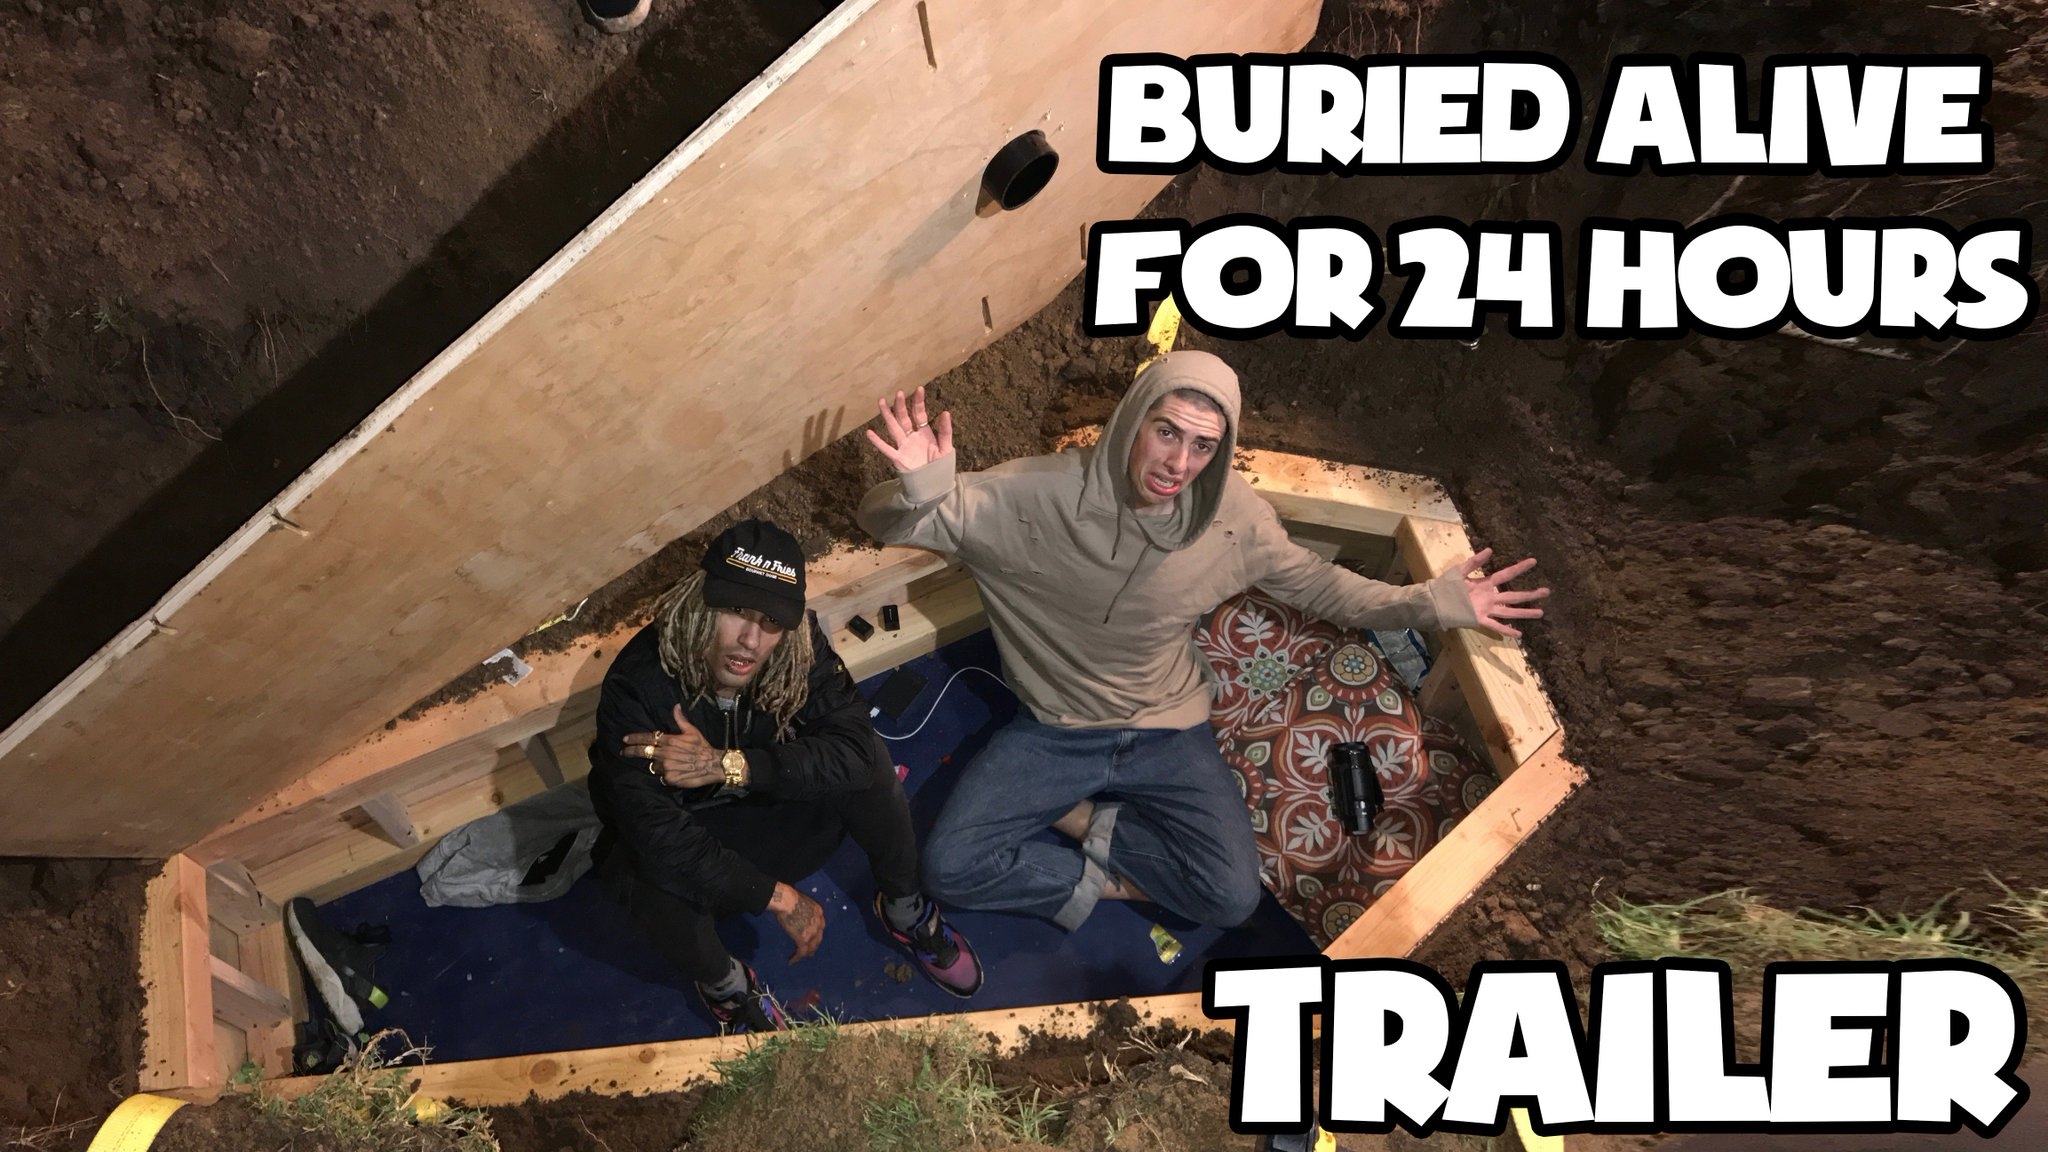 BURIED ALIVE FOR 24 HOURS. VIDEO WILL BE UP TOMORROW. SUBSCRIBE TO SEE IT FIRST > https://t.co/bUnjPT058b https://t.co/9YDUV0BoLE